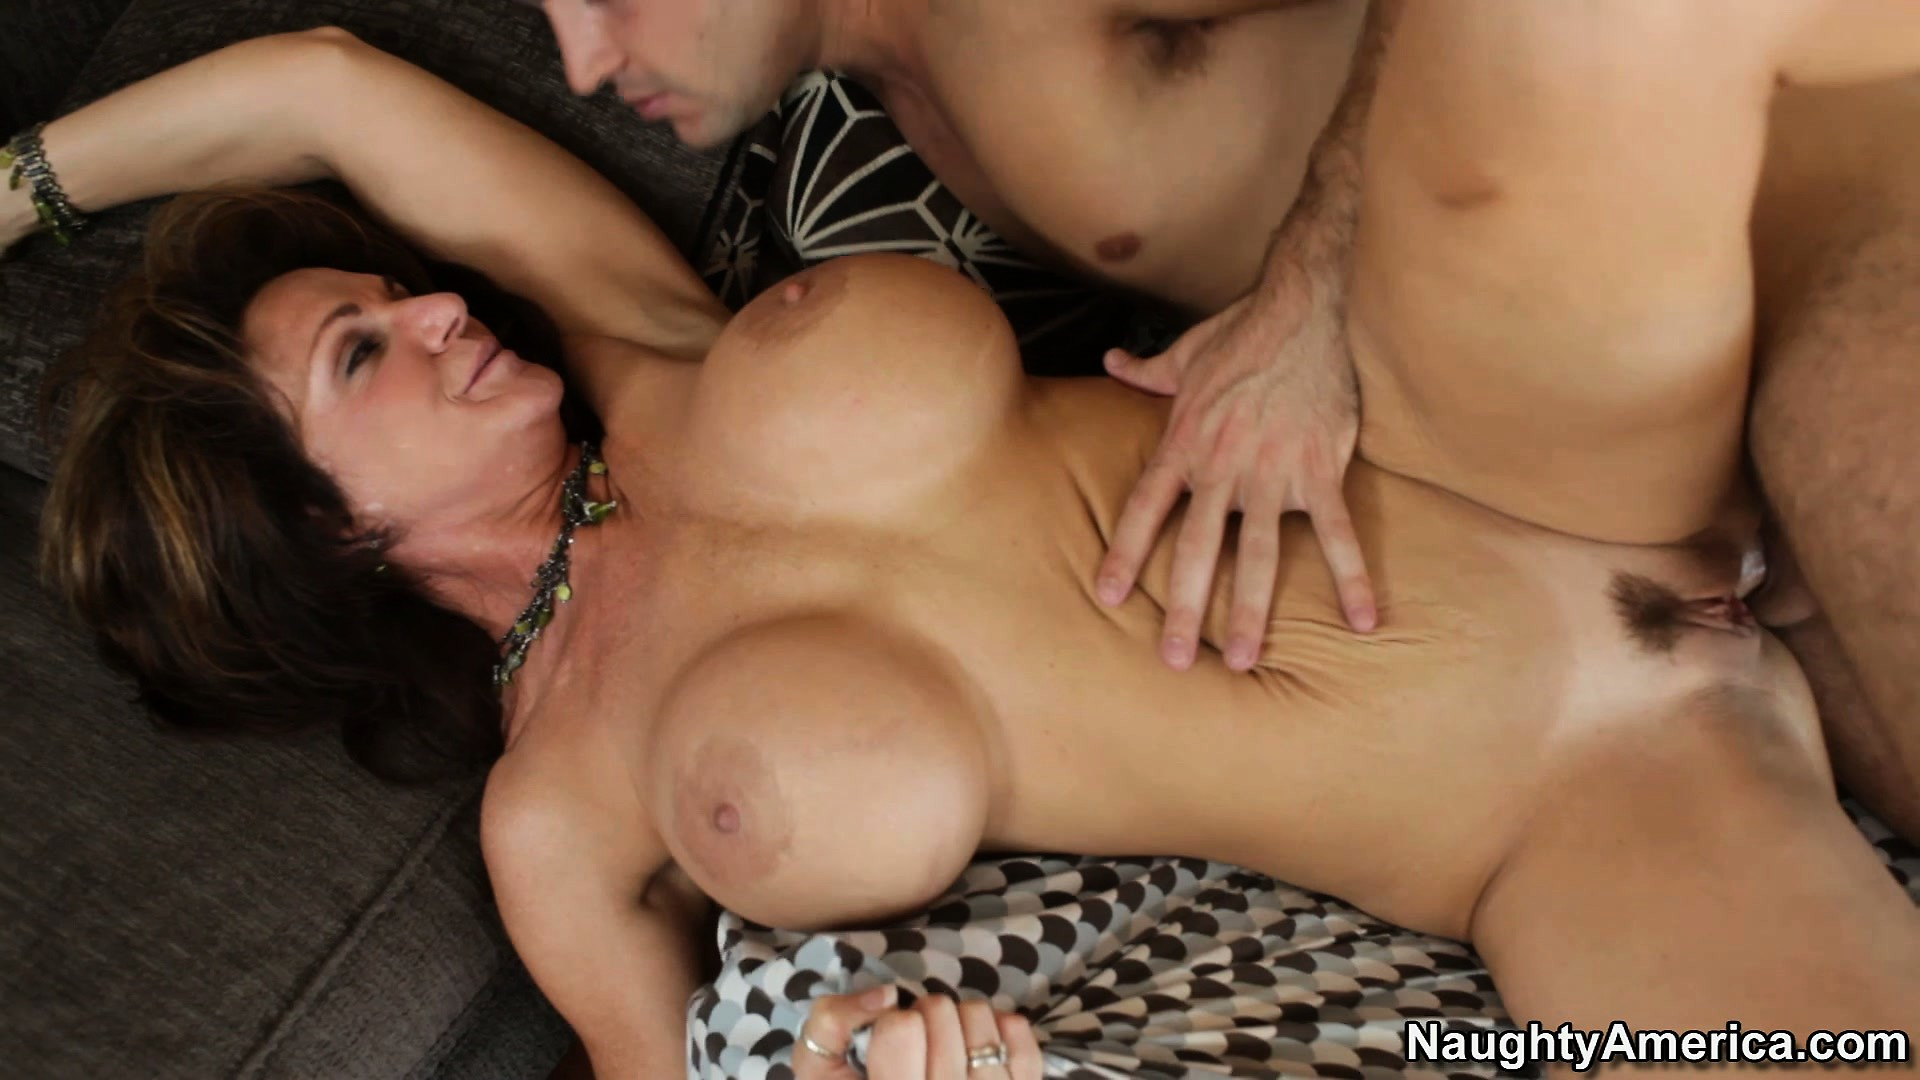 Porn Tube of Deauxma Gets Her Tight Pussy Fucked From Behind While He Kisses Her